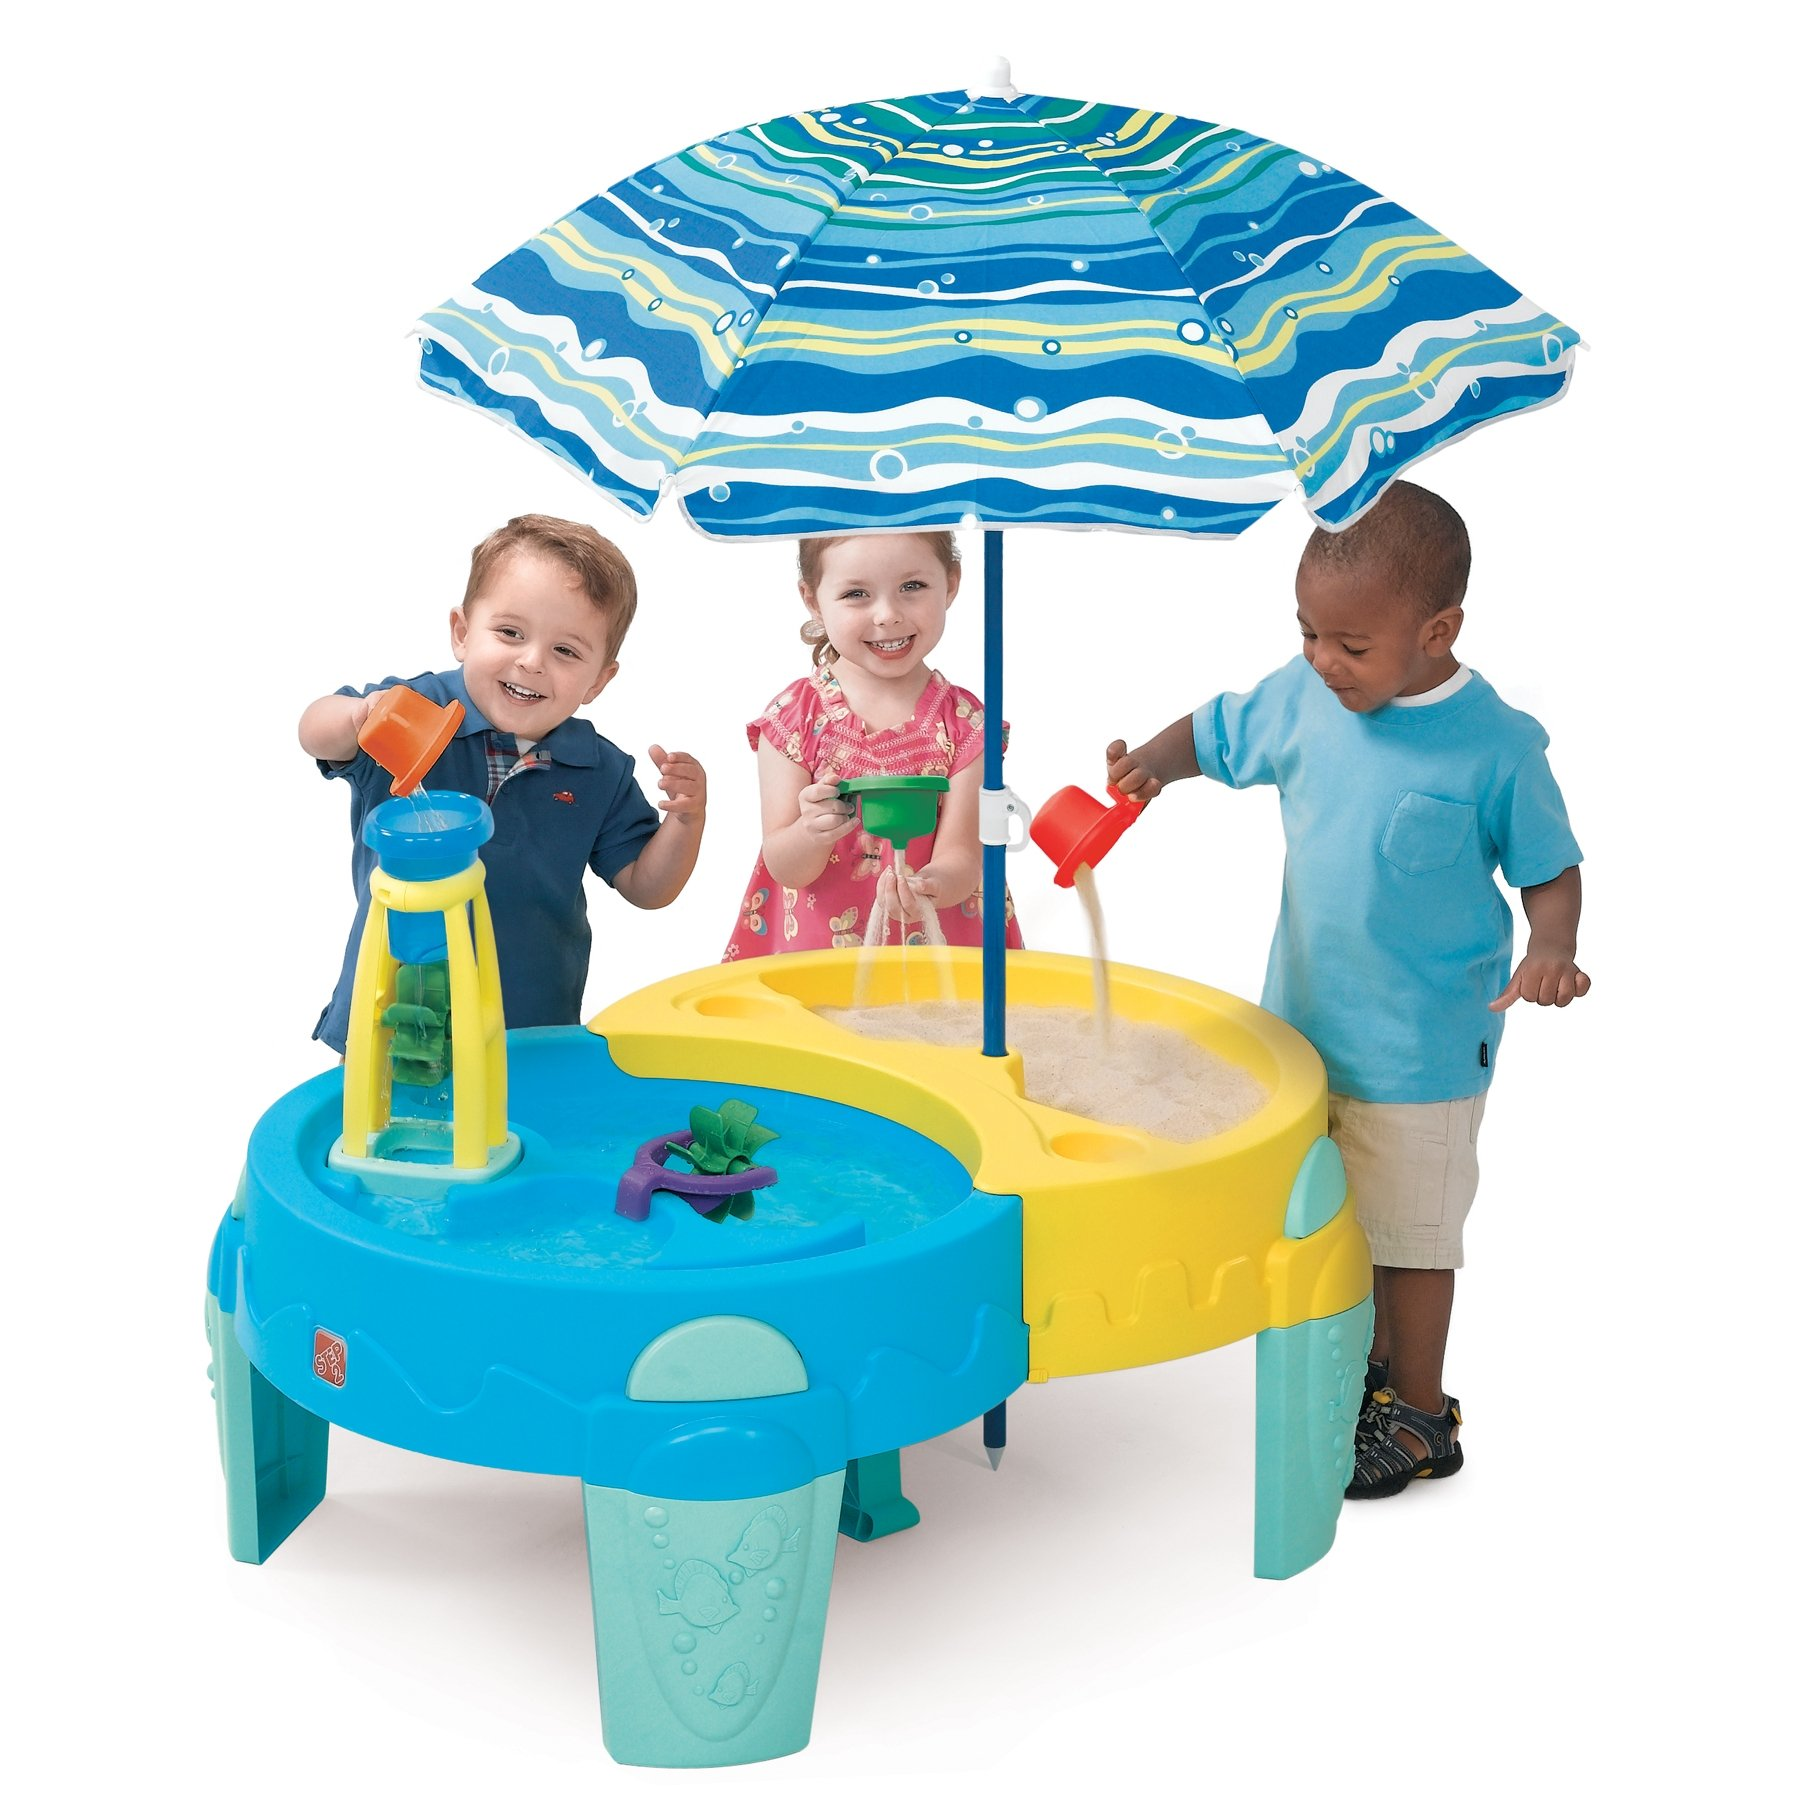 Shady Oasis Sand and Water Play Table by Step2 (Image #1)